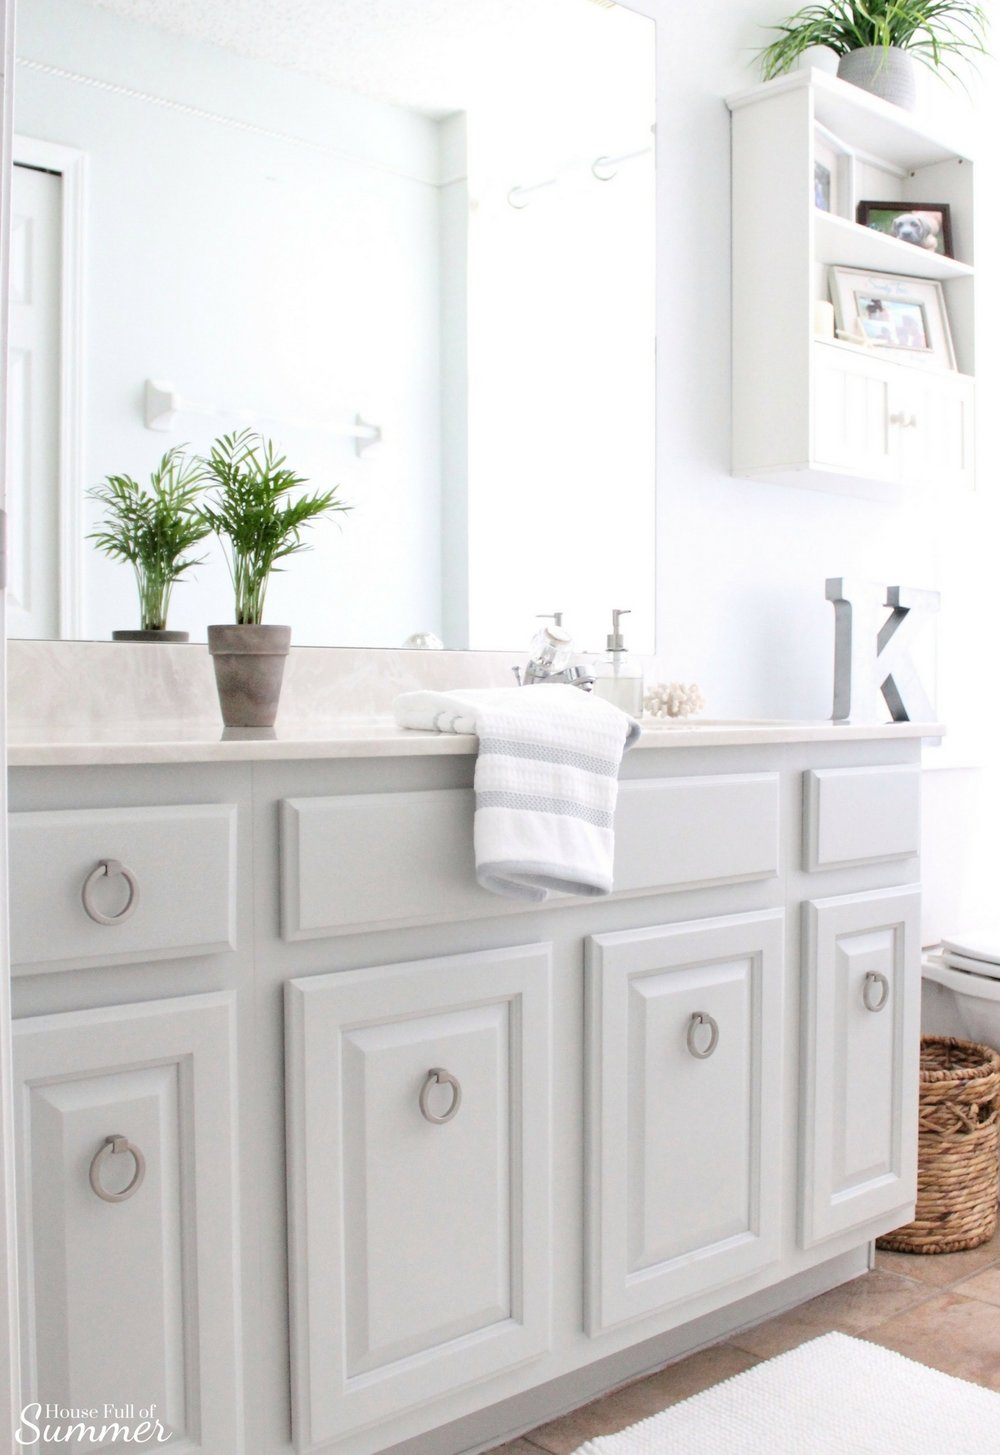 house full of summer easy bathroom cabinet with chalk paint bathroom makeover